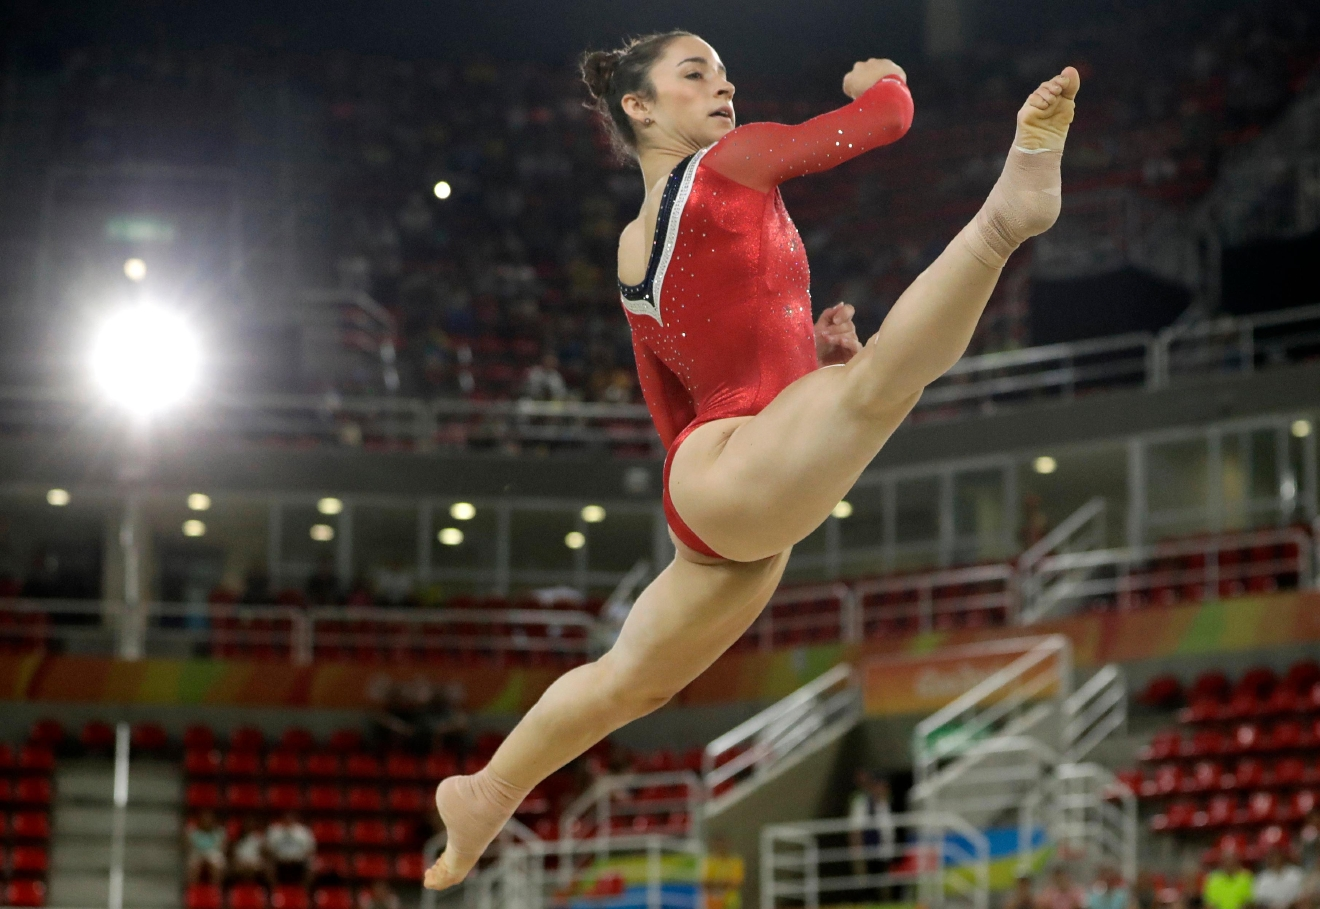 Aly Raisman of Massachusetts performs on the floor during the gymnastics exhibition gala at the 2016 Summer Olympics in Rio de Janeiro, Brazil, Wednesday, Aug. 17, 2016. (AP Photo/Dmitri Lovetsky)